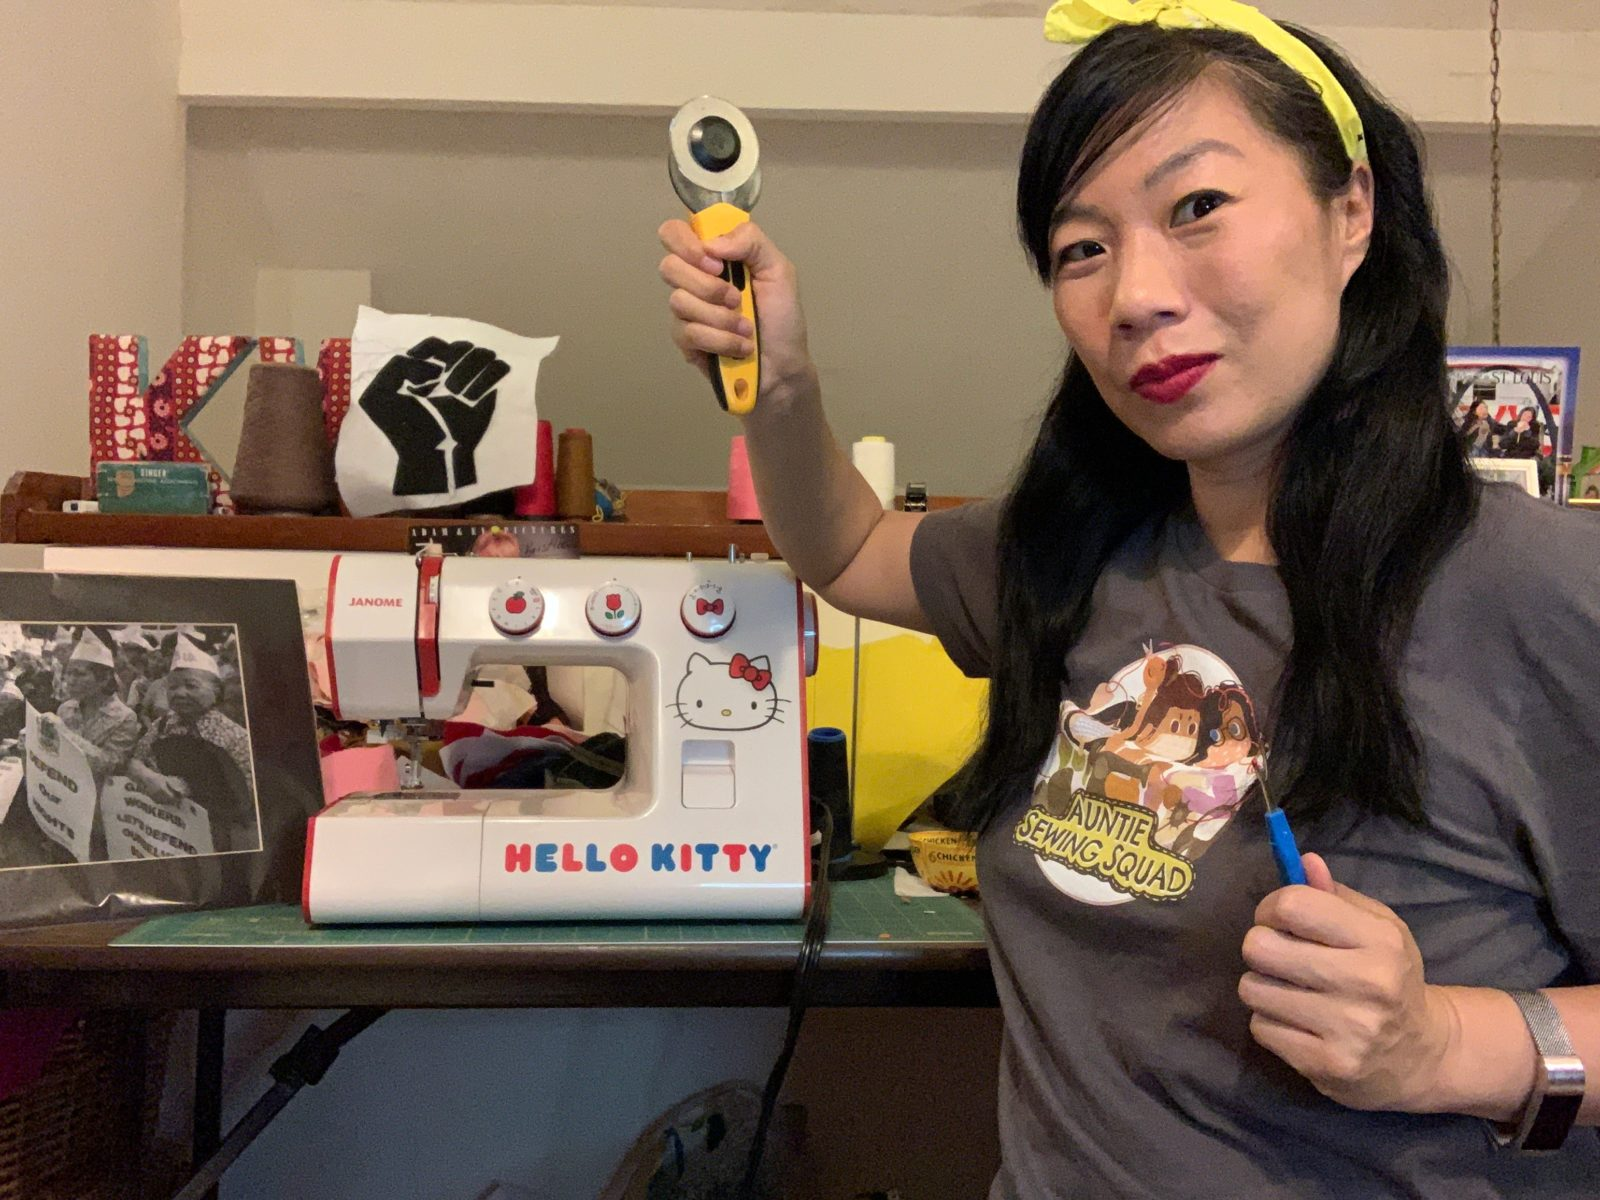 Artist Kristina Wong standing in front of Hello Kitty sewing machine.